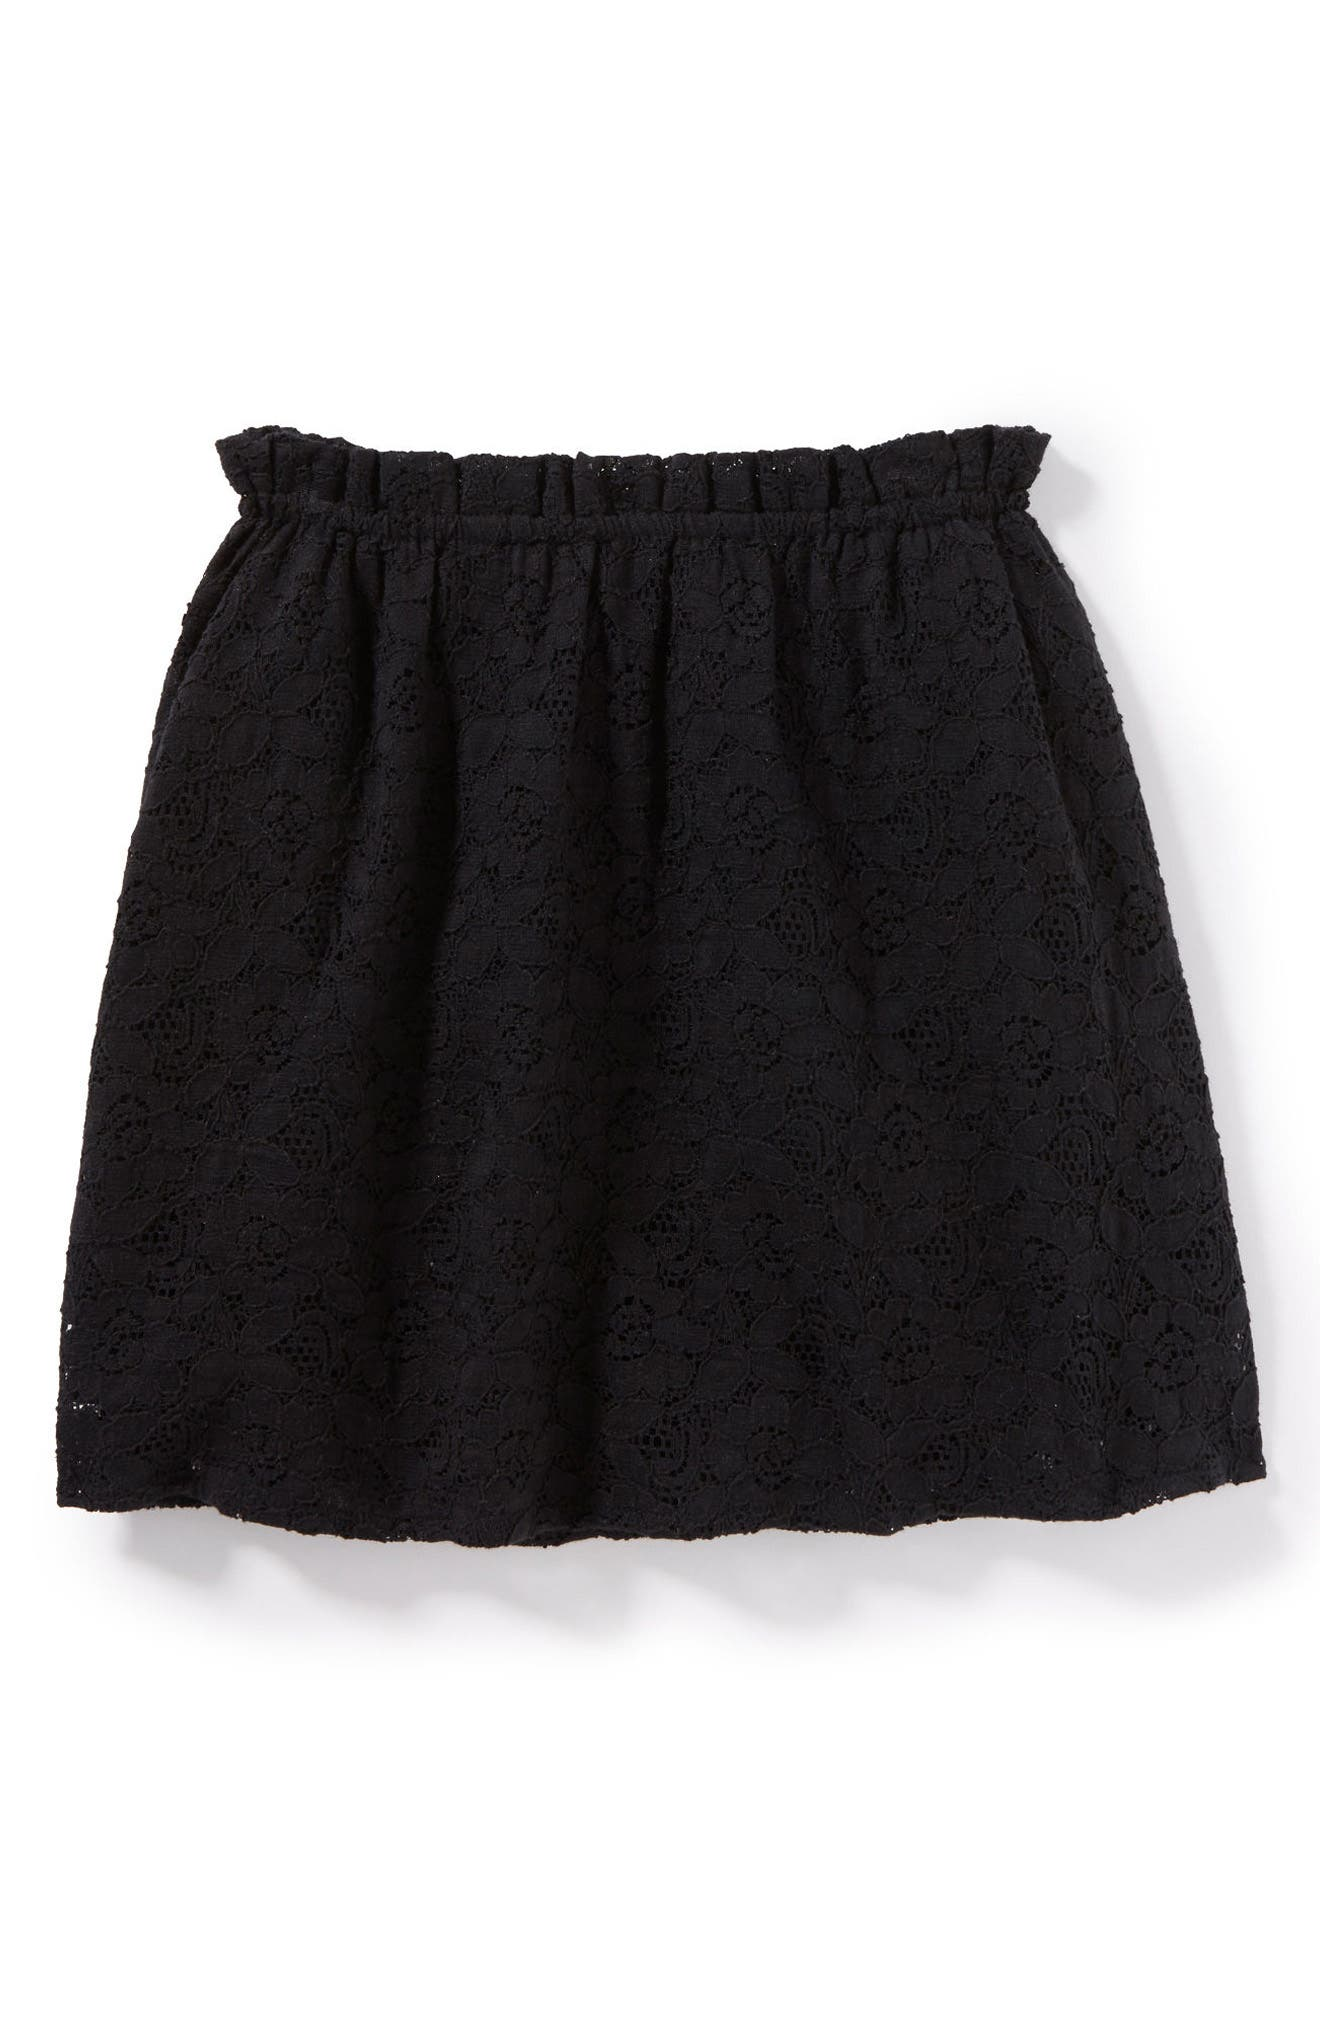 Renee Lace Skirt,                         Main,                         color, 001